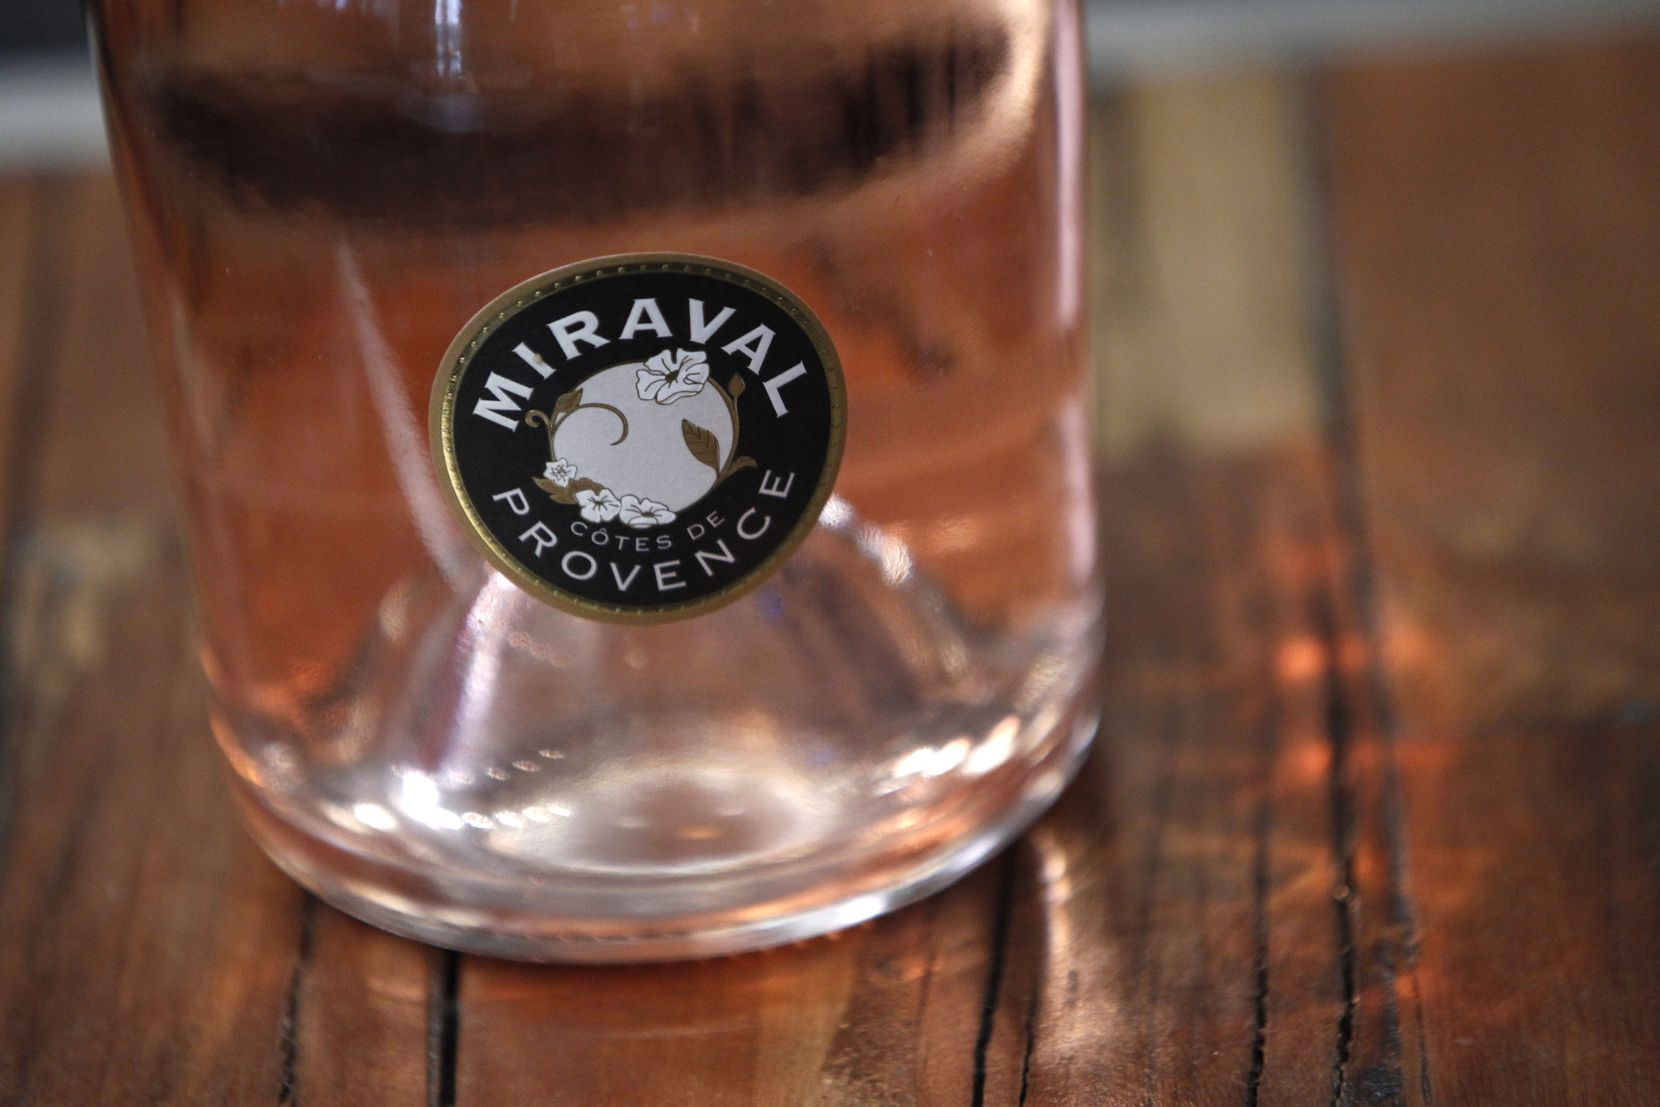 A bottle of Miraval 2013 rose wine